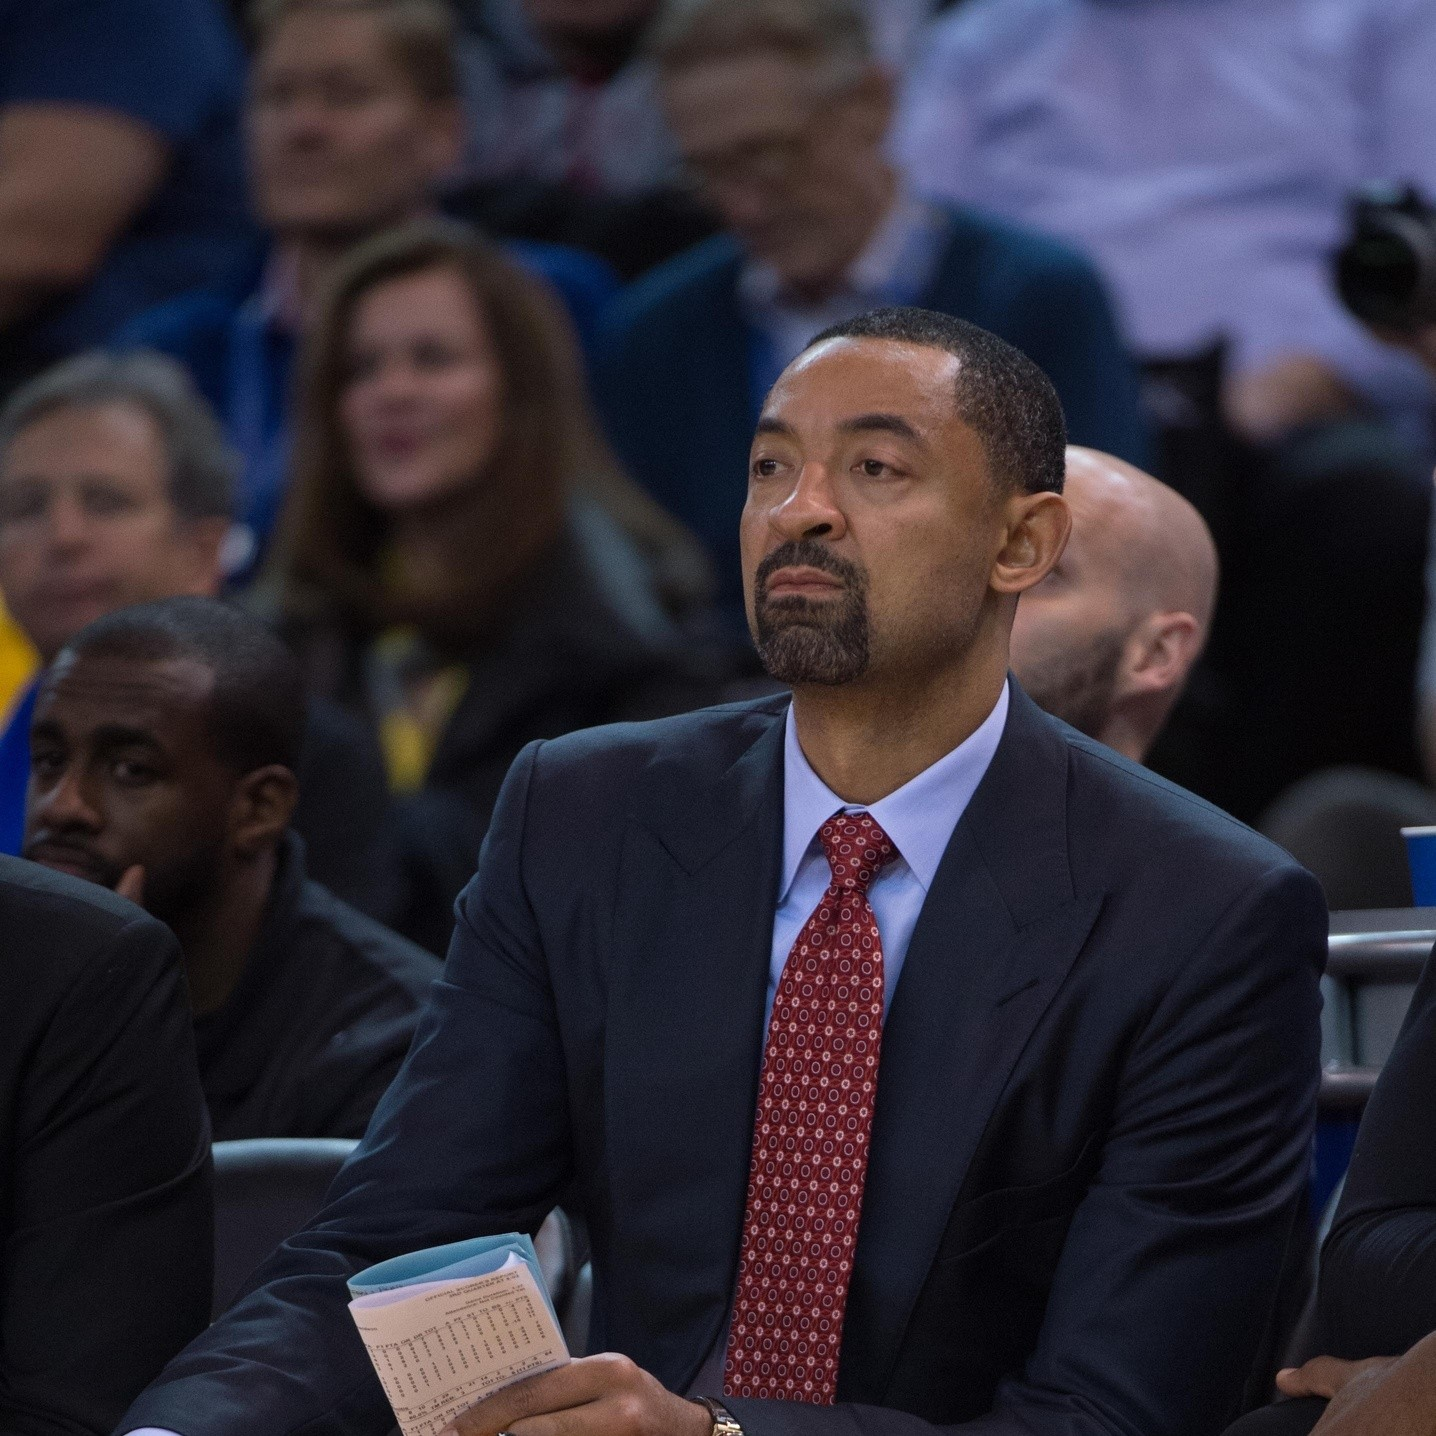 After A Life In Basketball, Juwan Howard Is Ready To Lead As A Coach | VICE Sports